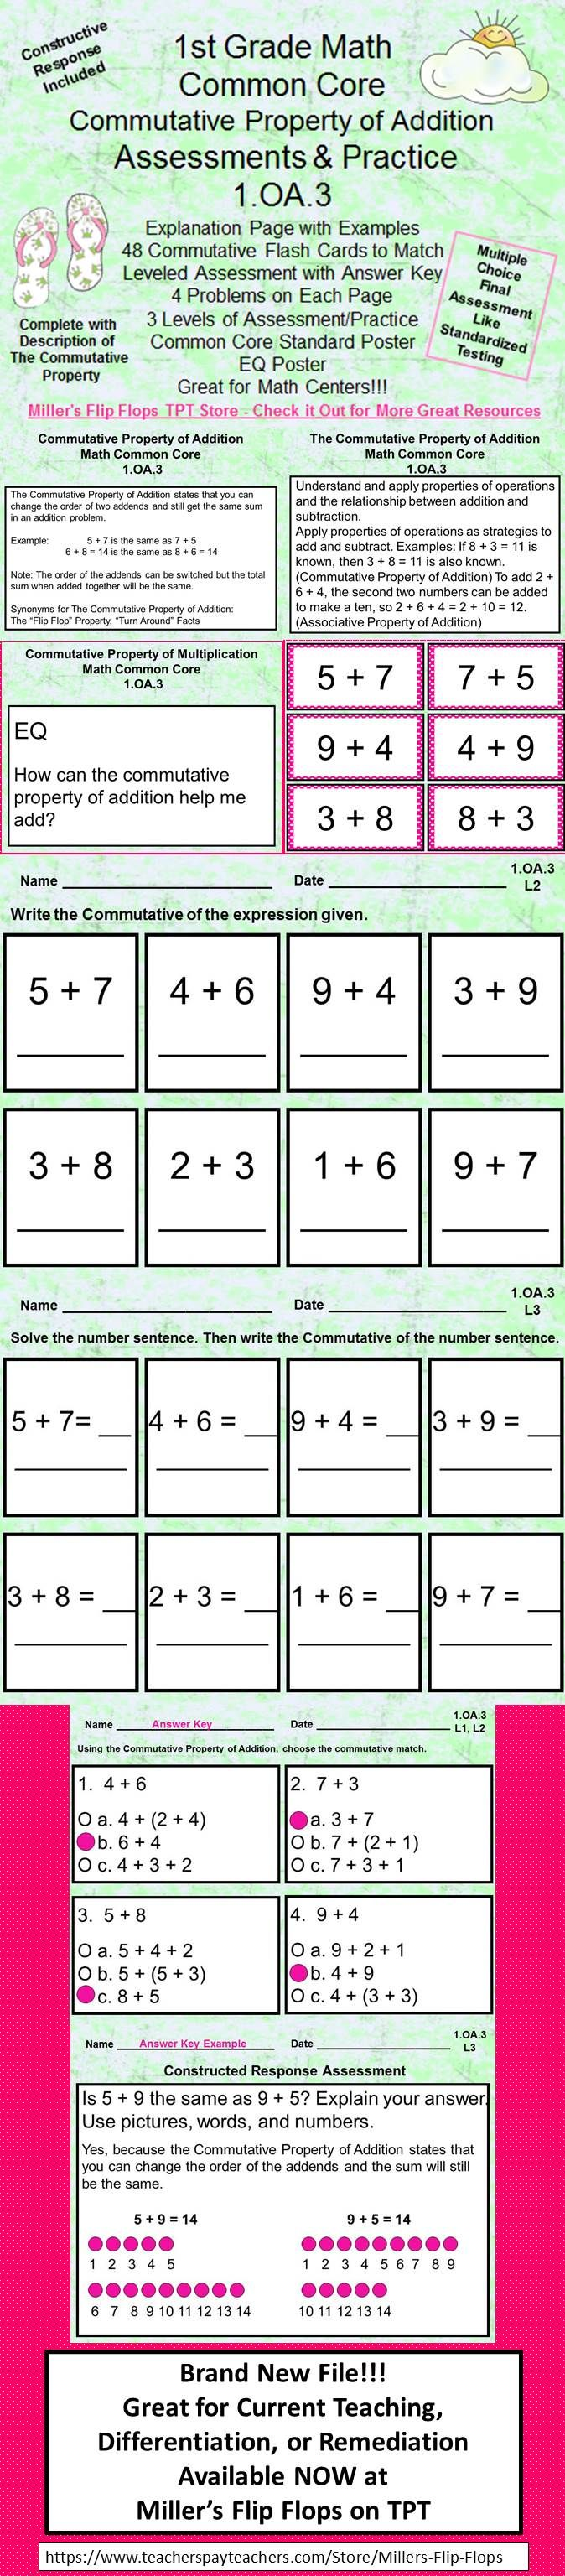 Worksheets Commutative Property Of Addition Worksheets 3rd Grade get 20 properties of addition ideas on pinterest without signing commutative property 1 oa 3 common core math